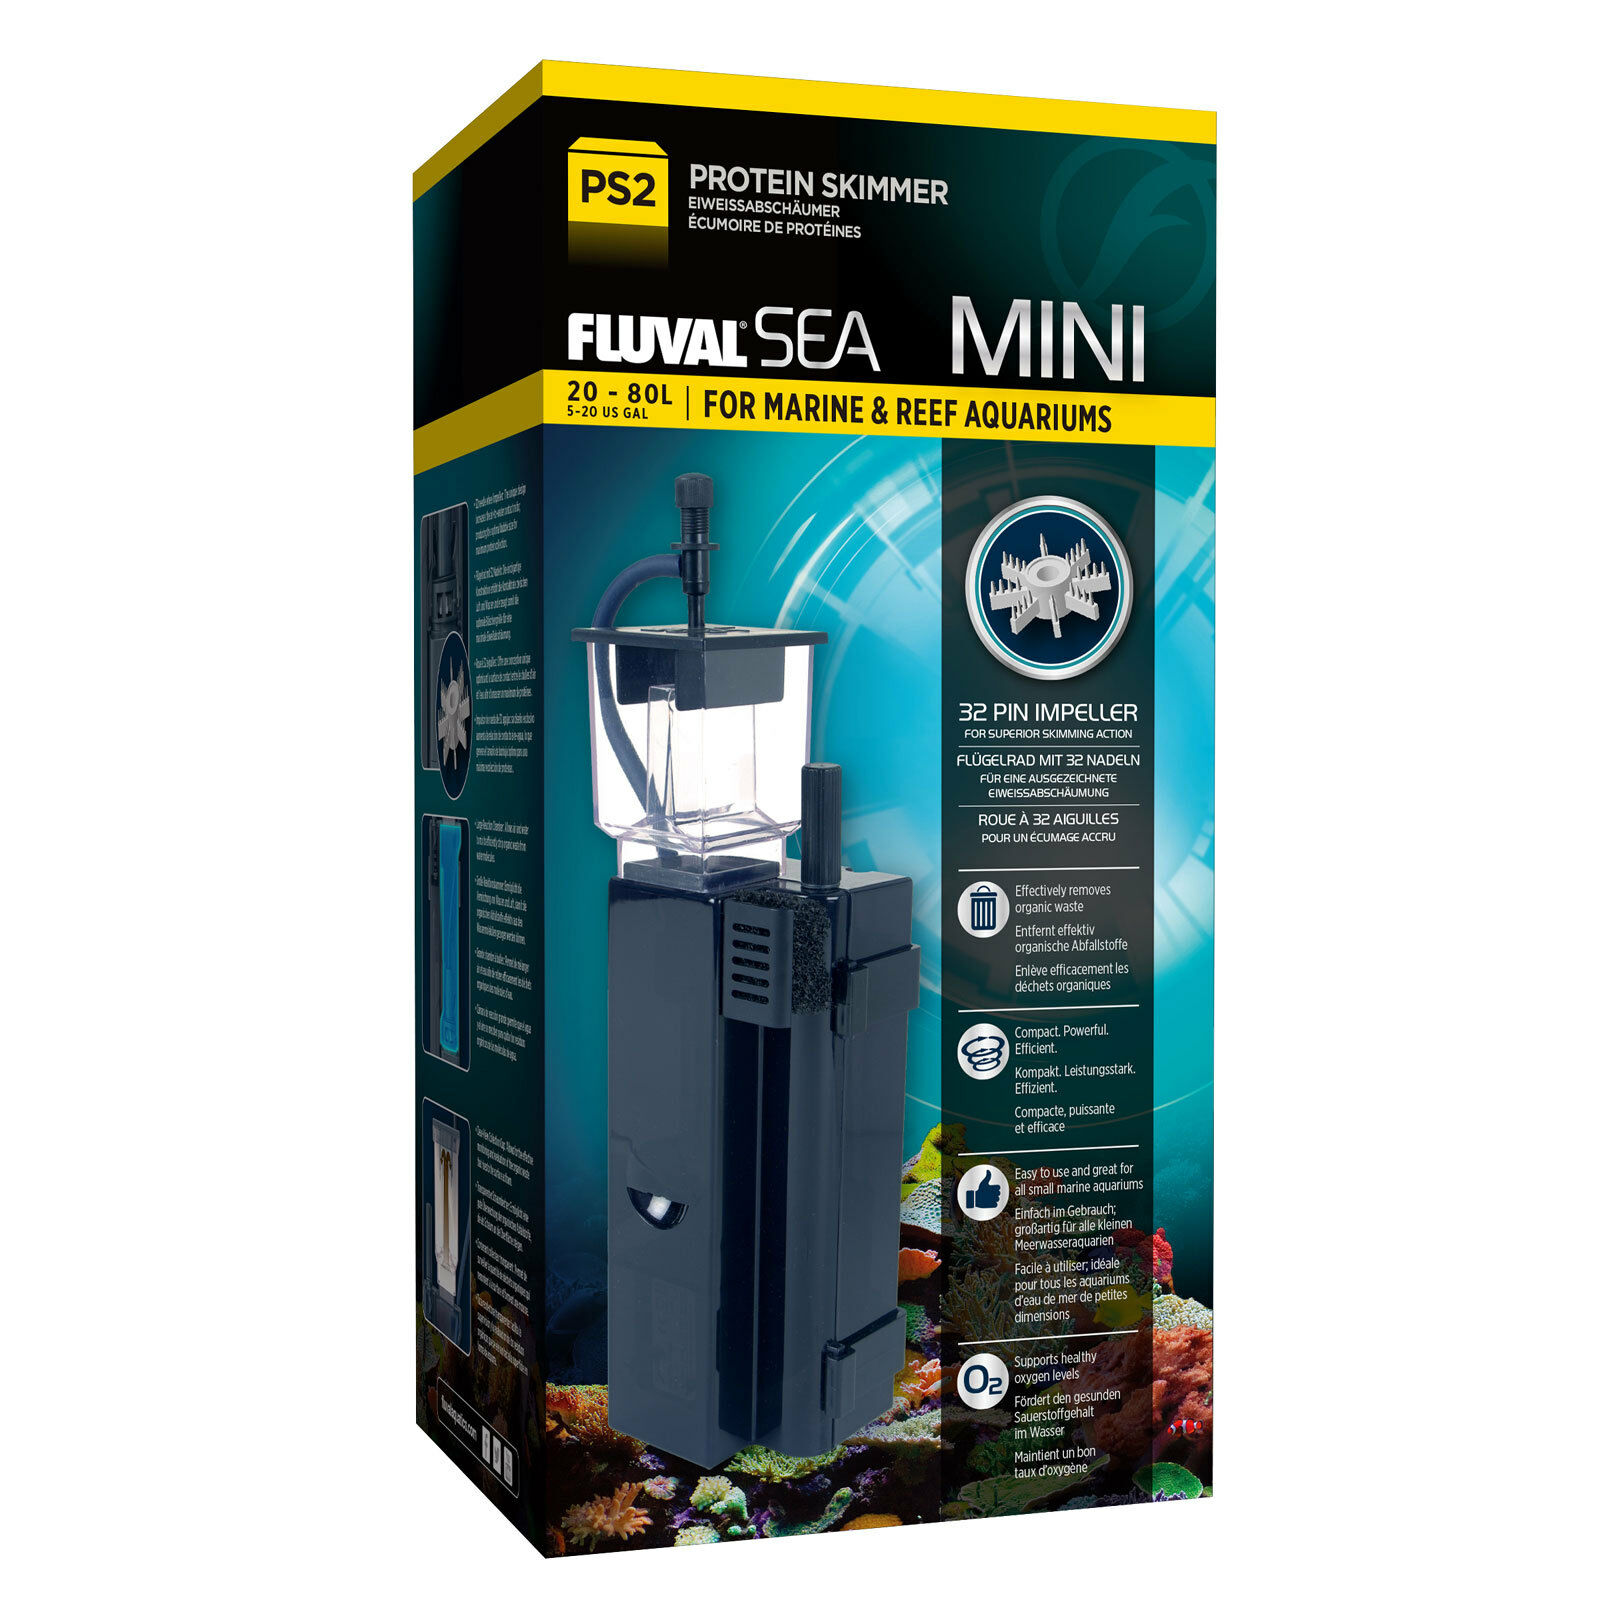 FLUVAL Sea Mini Protein Skimmer  2080 L